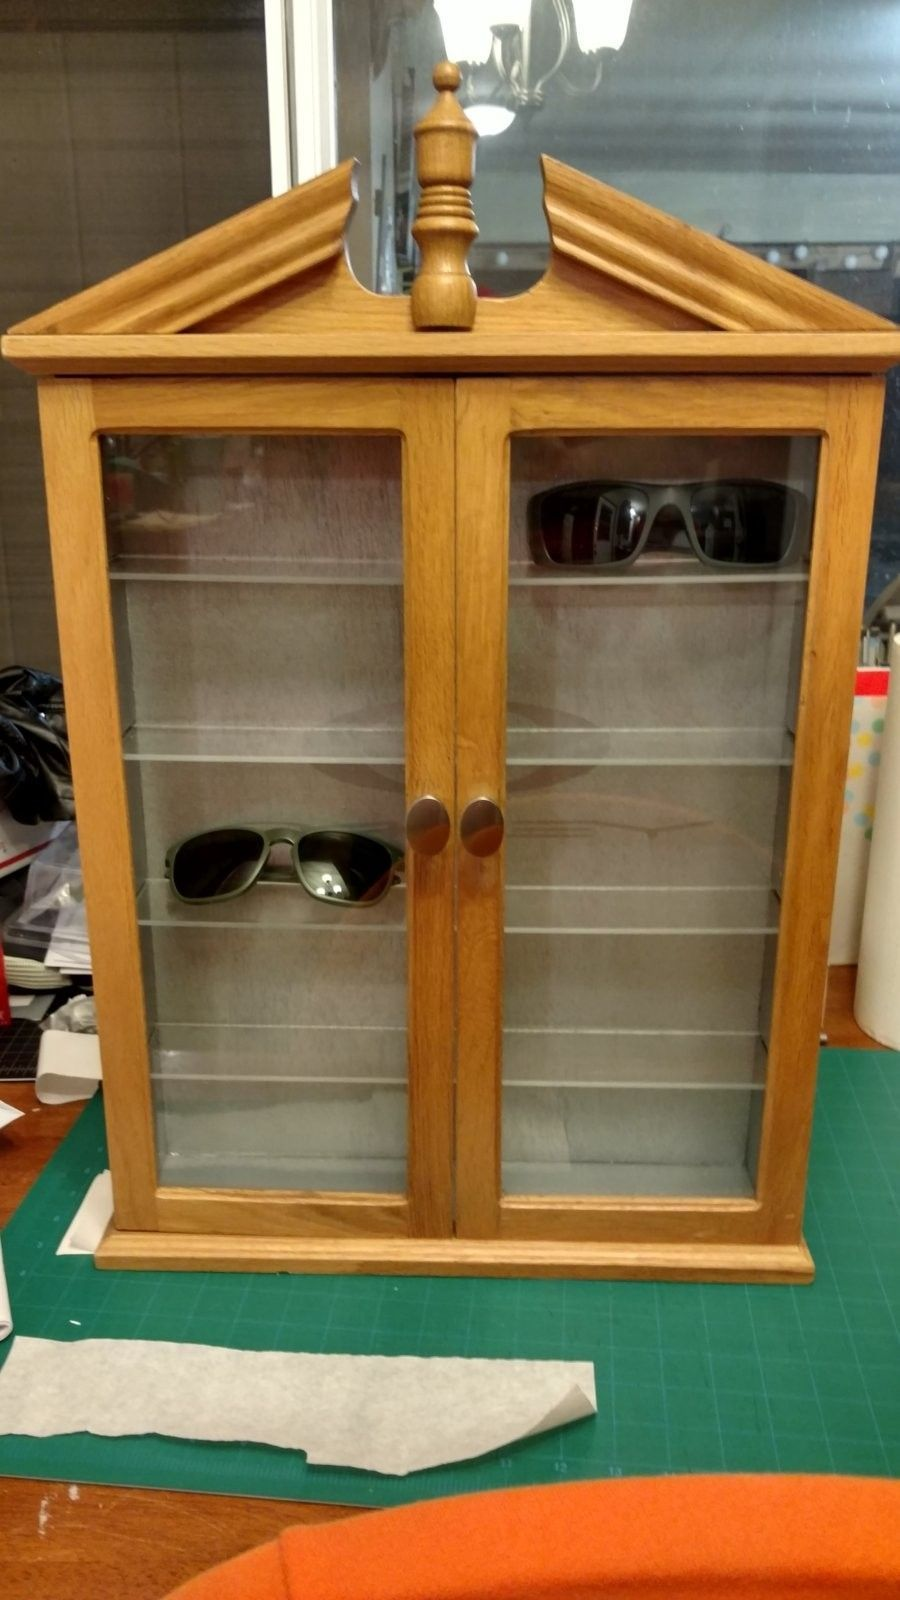 Small DIY wall hanger cabinet project. - IMG_20160223_190049101_HDR.jpg